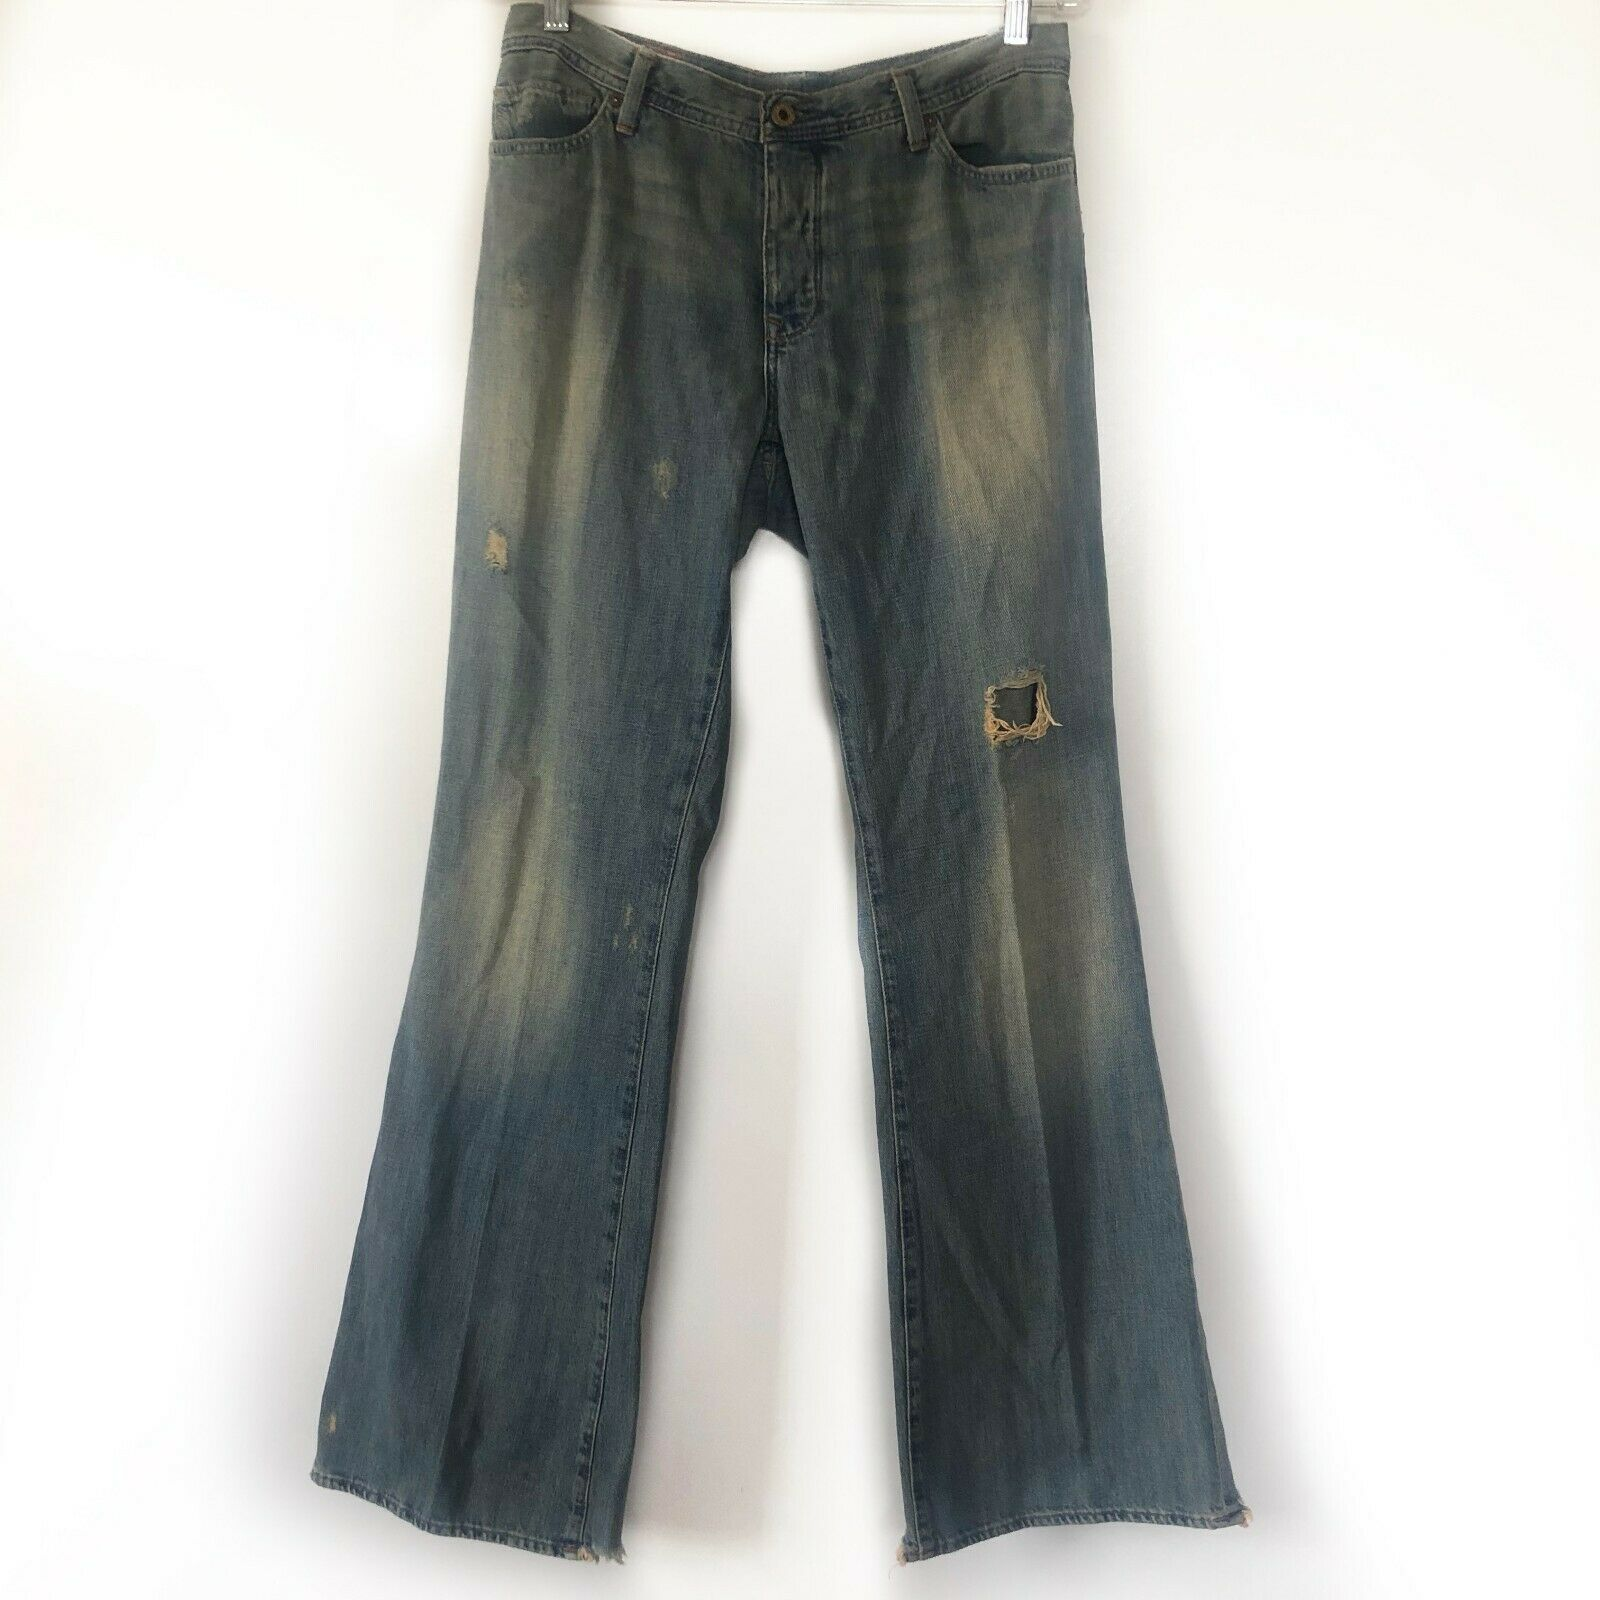 Ralph Lauren No. 67 Womens Jeans Distressed Vintage Wash Flare Boho High Rise 32